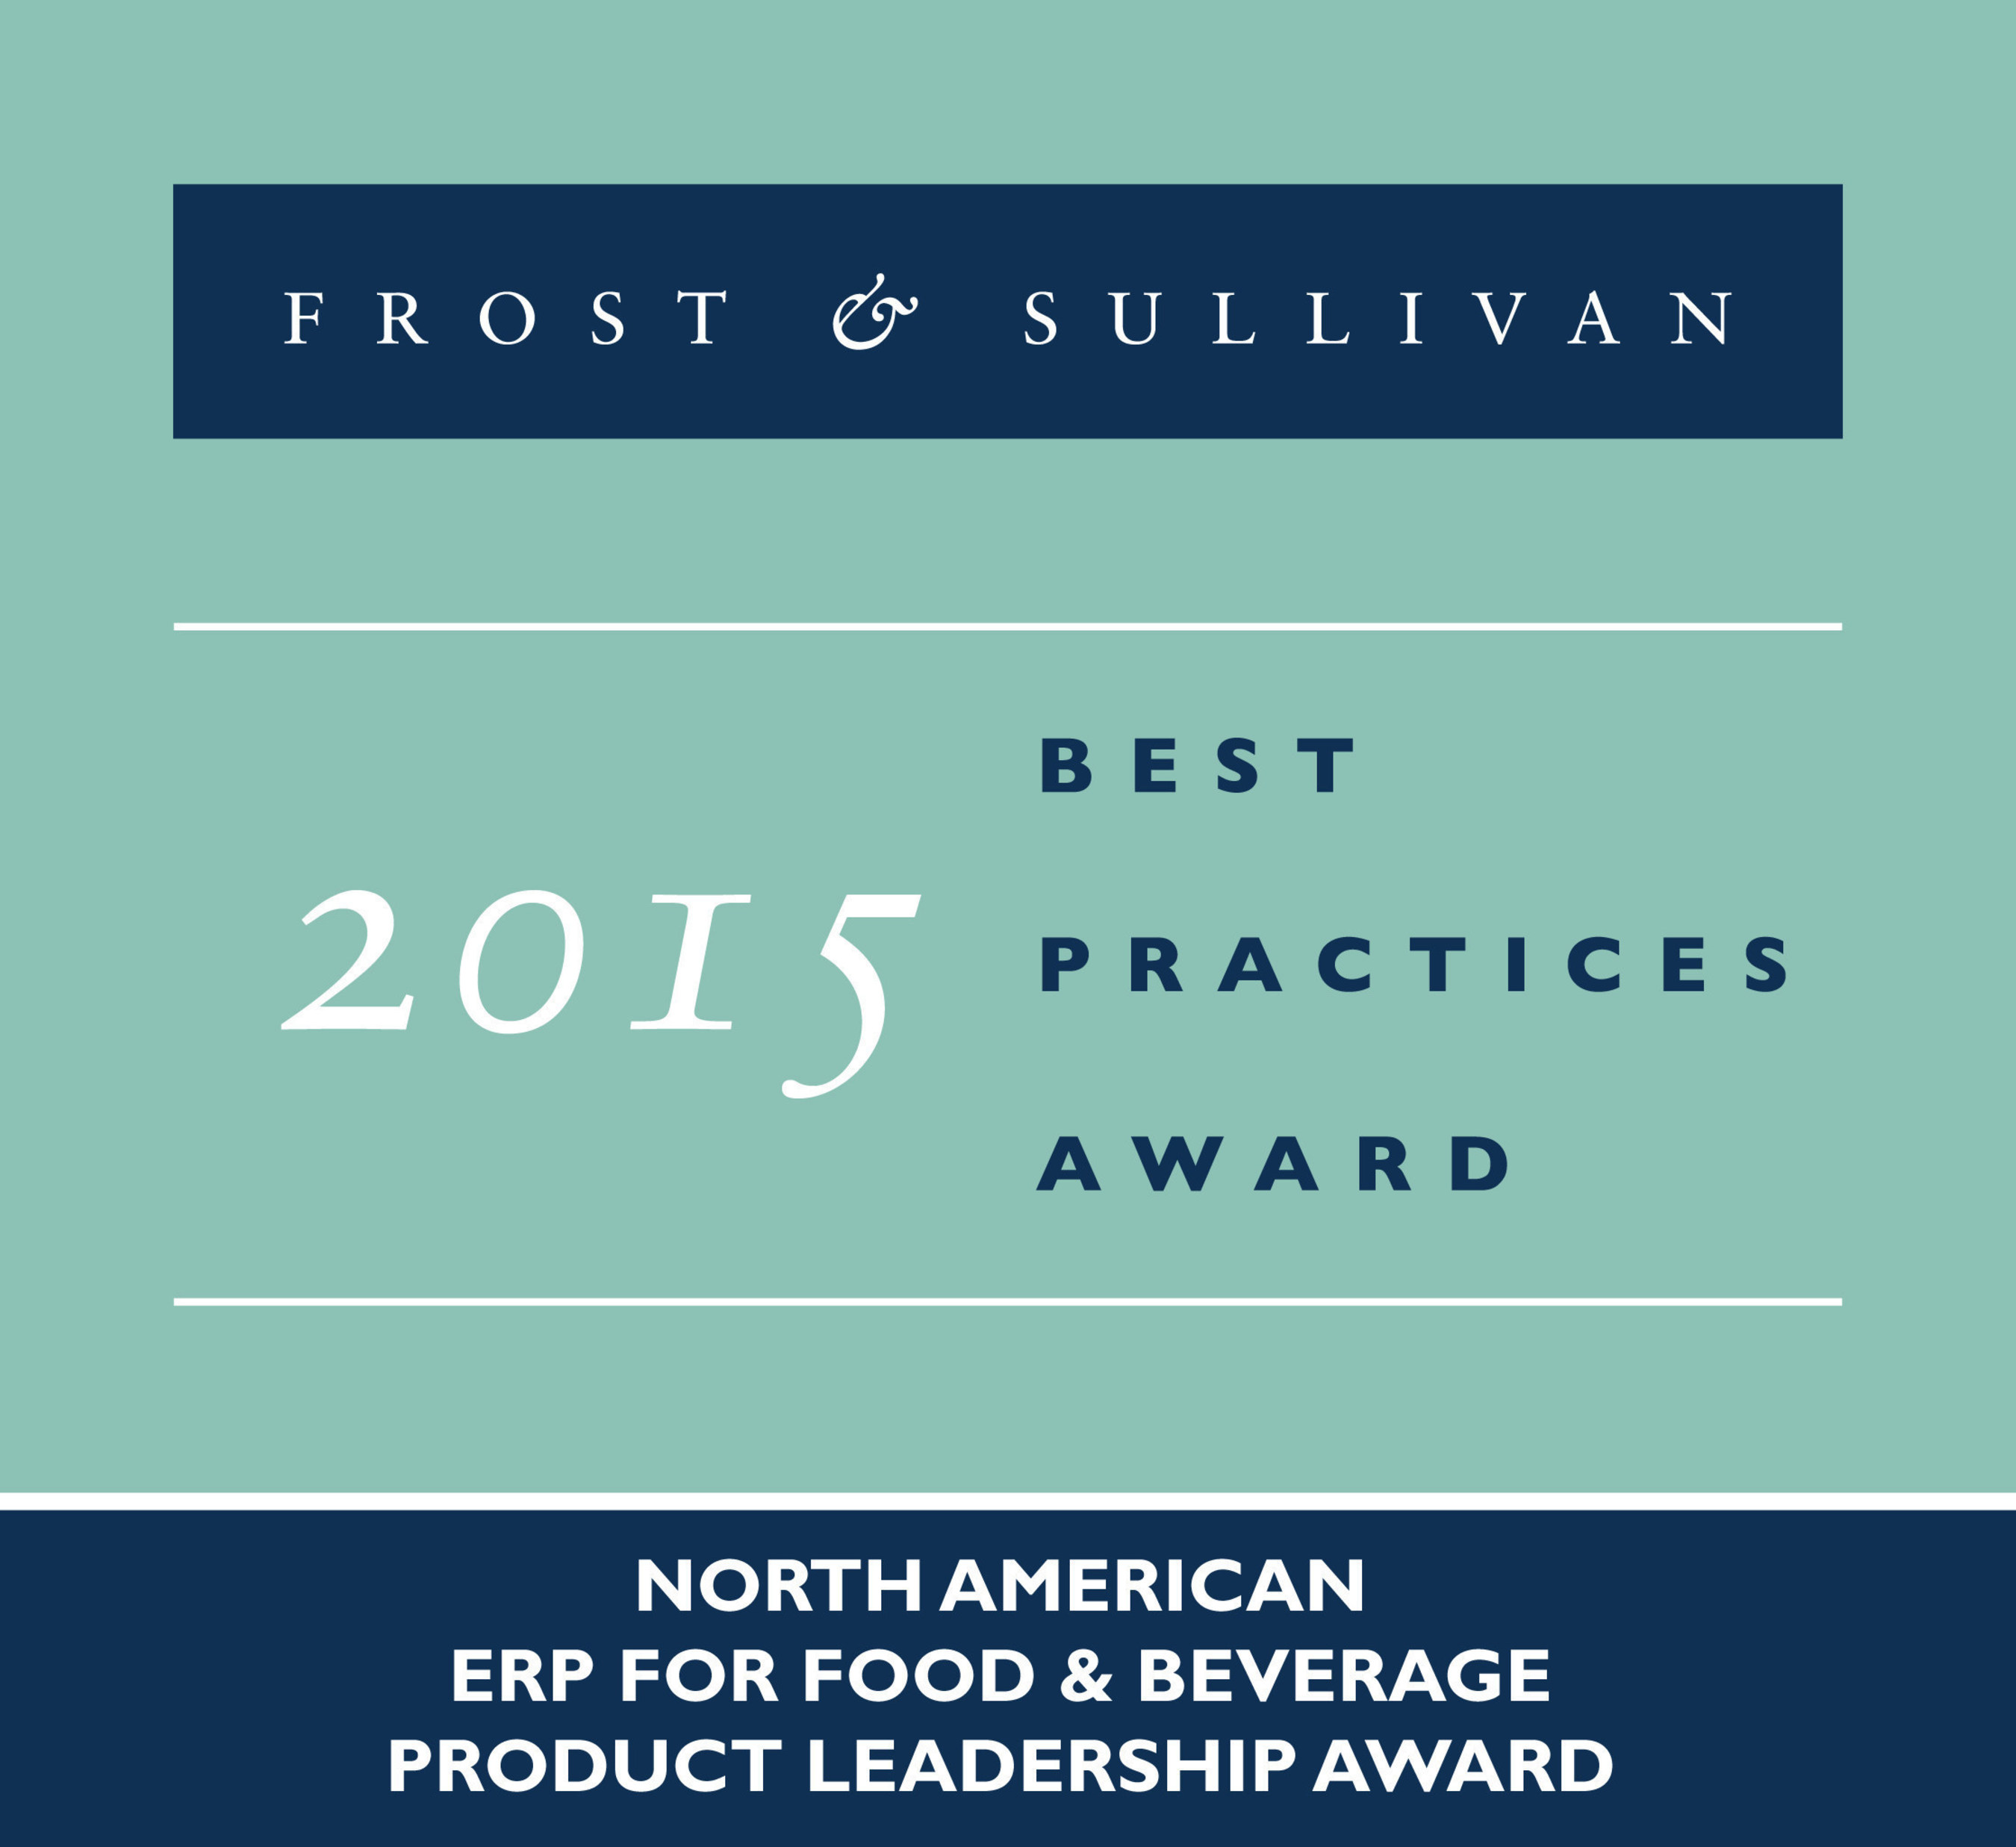 Frost & Sullivan Lauds Exact for Developing its Multifunctional Enterprise Resource Planning